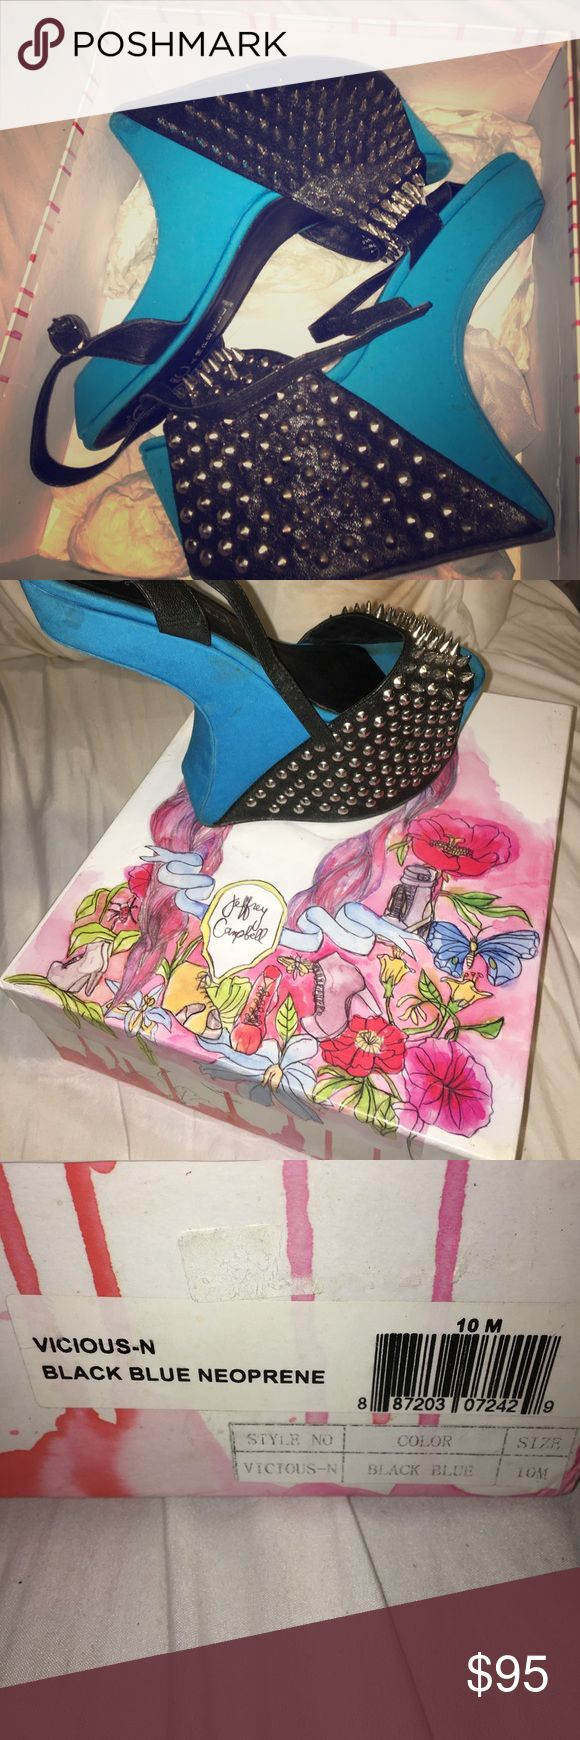 Jeffery Campbell's vicious spike heel Black blue neoprene spiked heels Jeffrey Campbell Shoes Heeled Boots